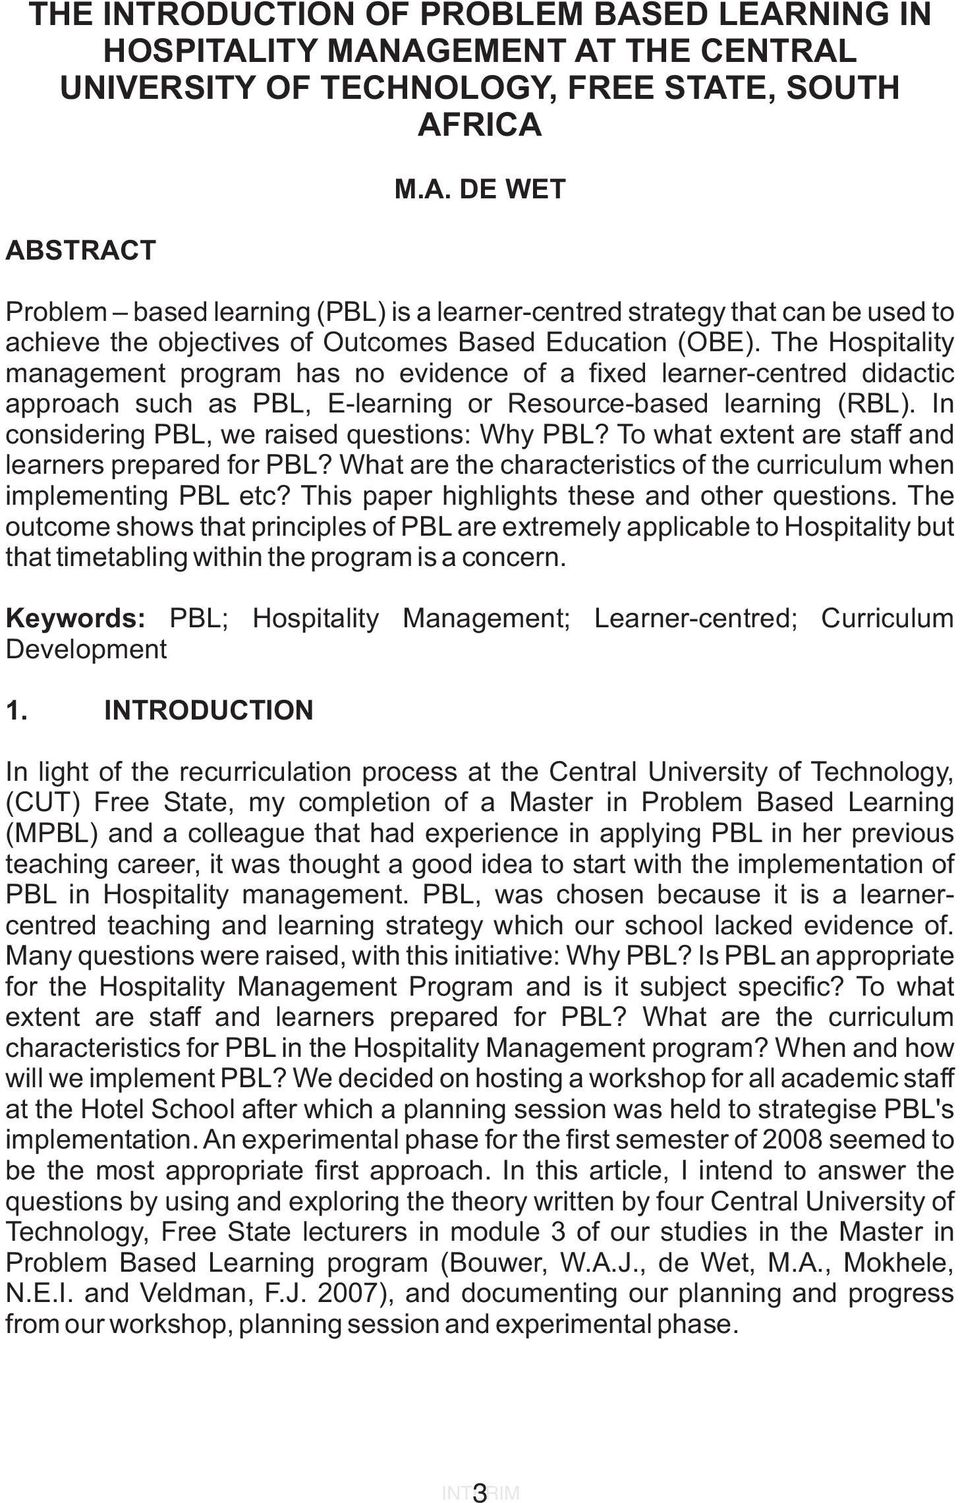 In considering PBL, we raised questions: Why PBL? To what extent are staff and learners prepared for PBL? What are the characteristics of the curriculum when implementing PBL etc?